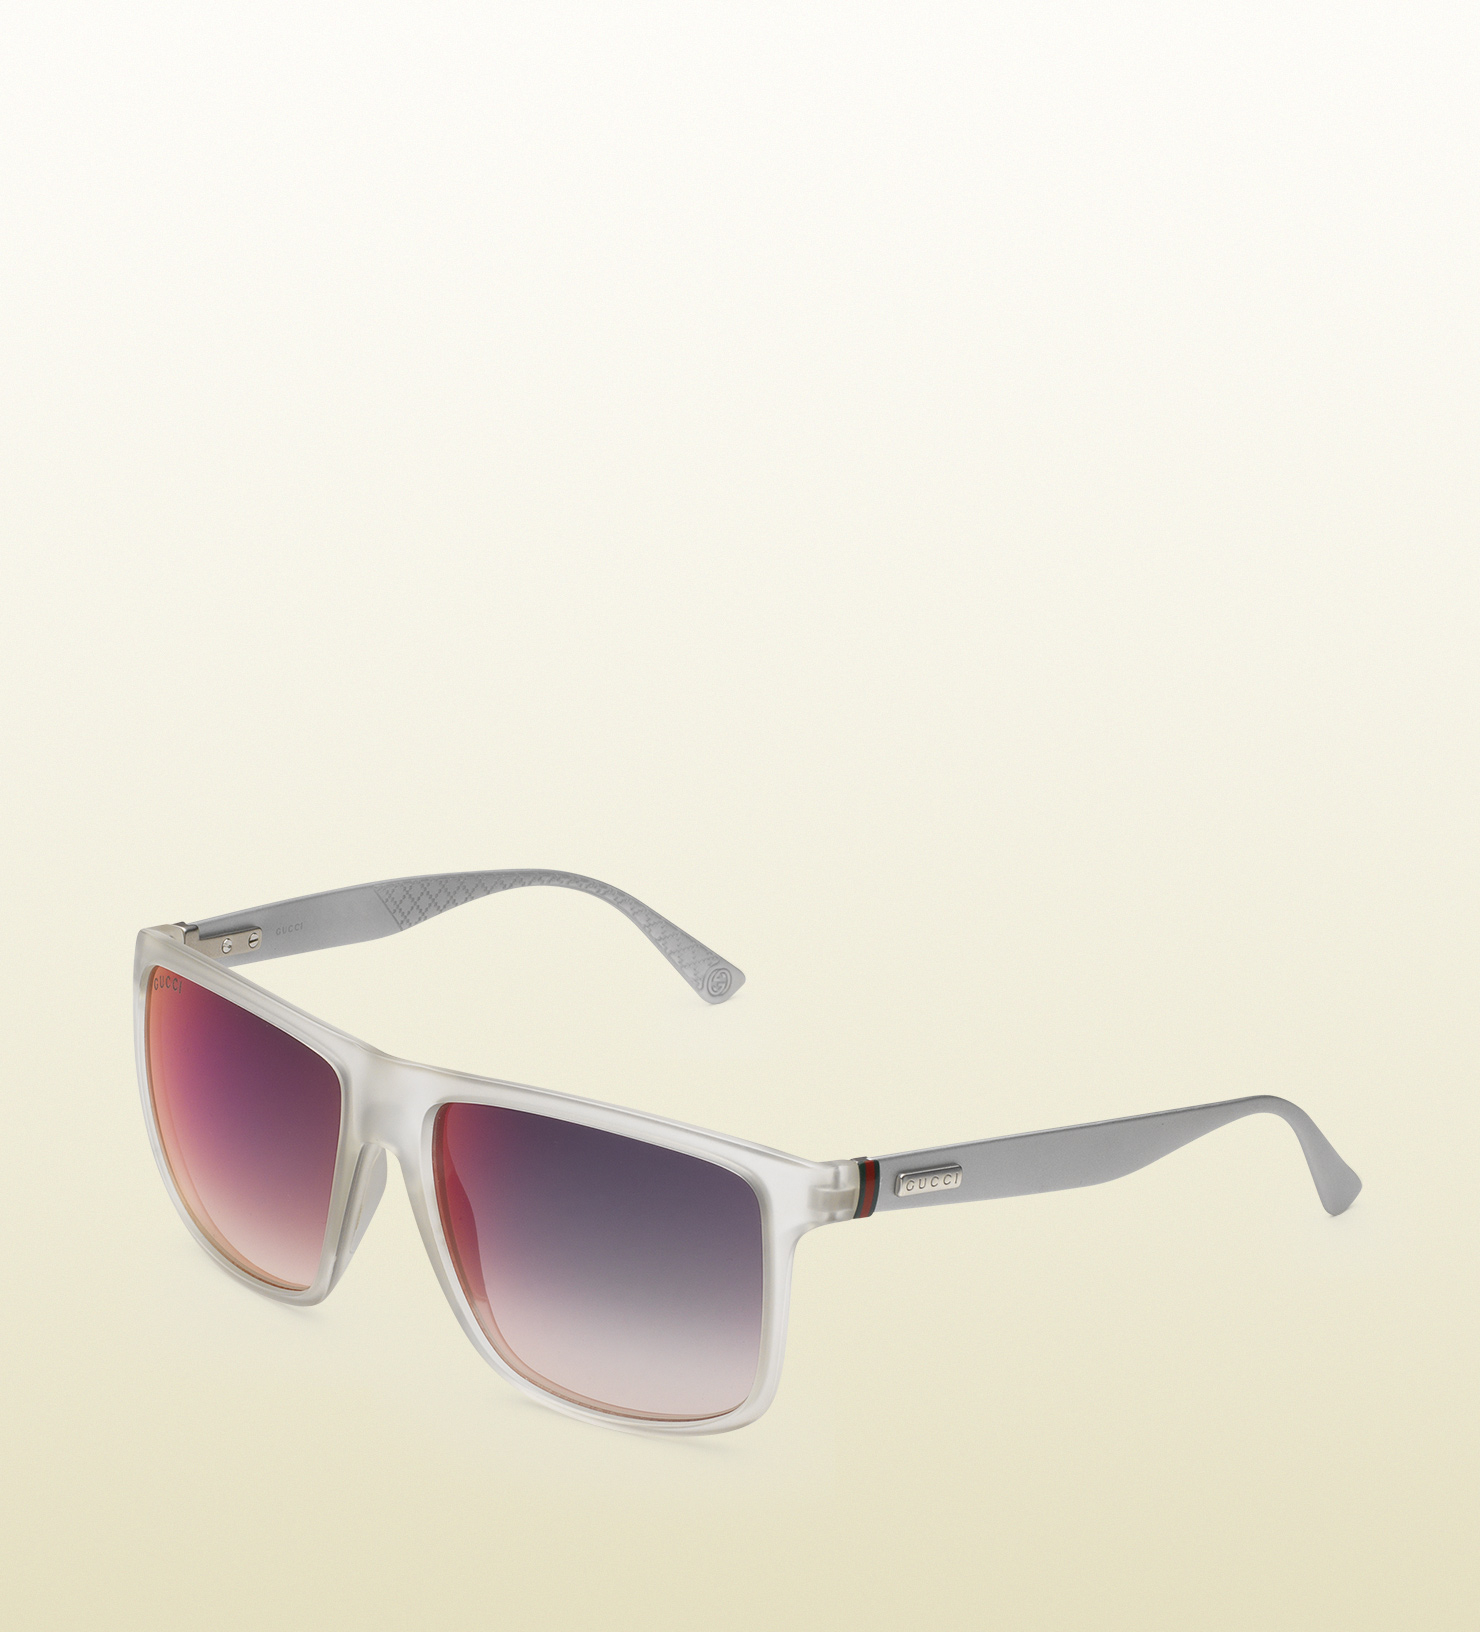 452c9d441a1 Lyst - Gucci Square-frame Aluminum And Injected Sunglasses in Gray ...